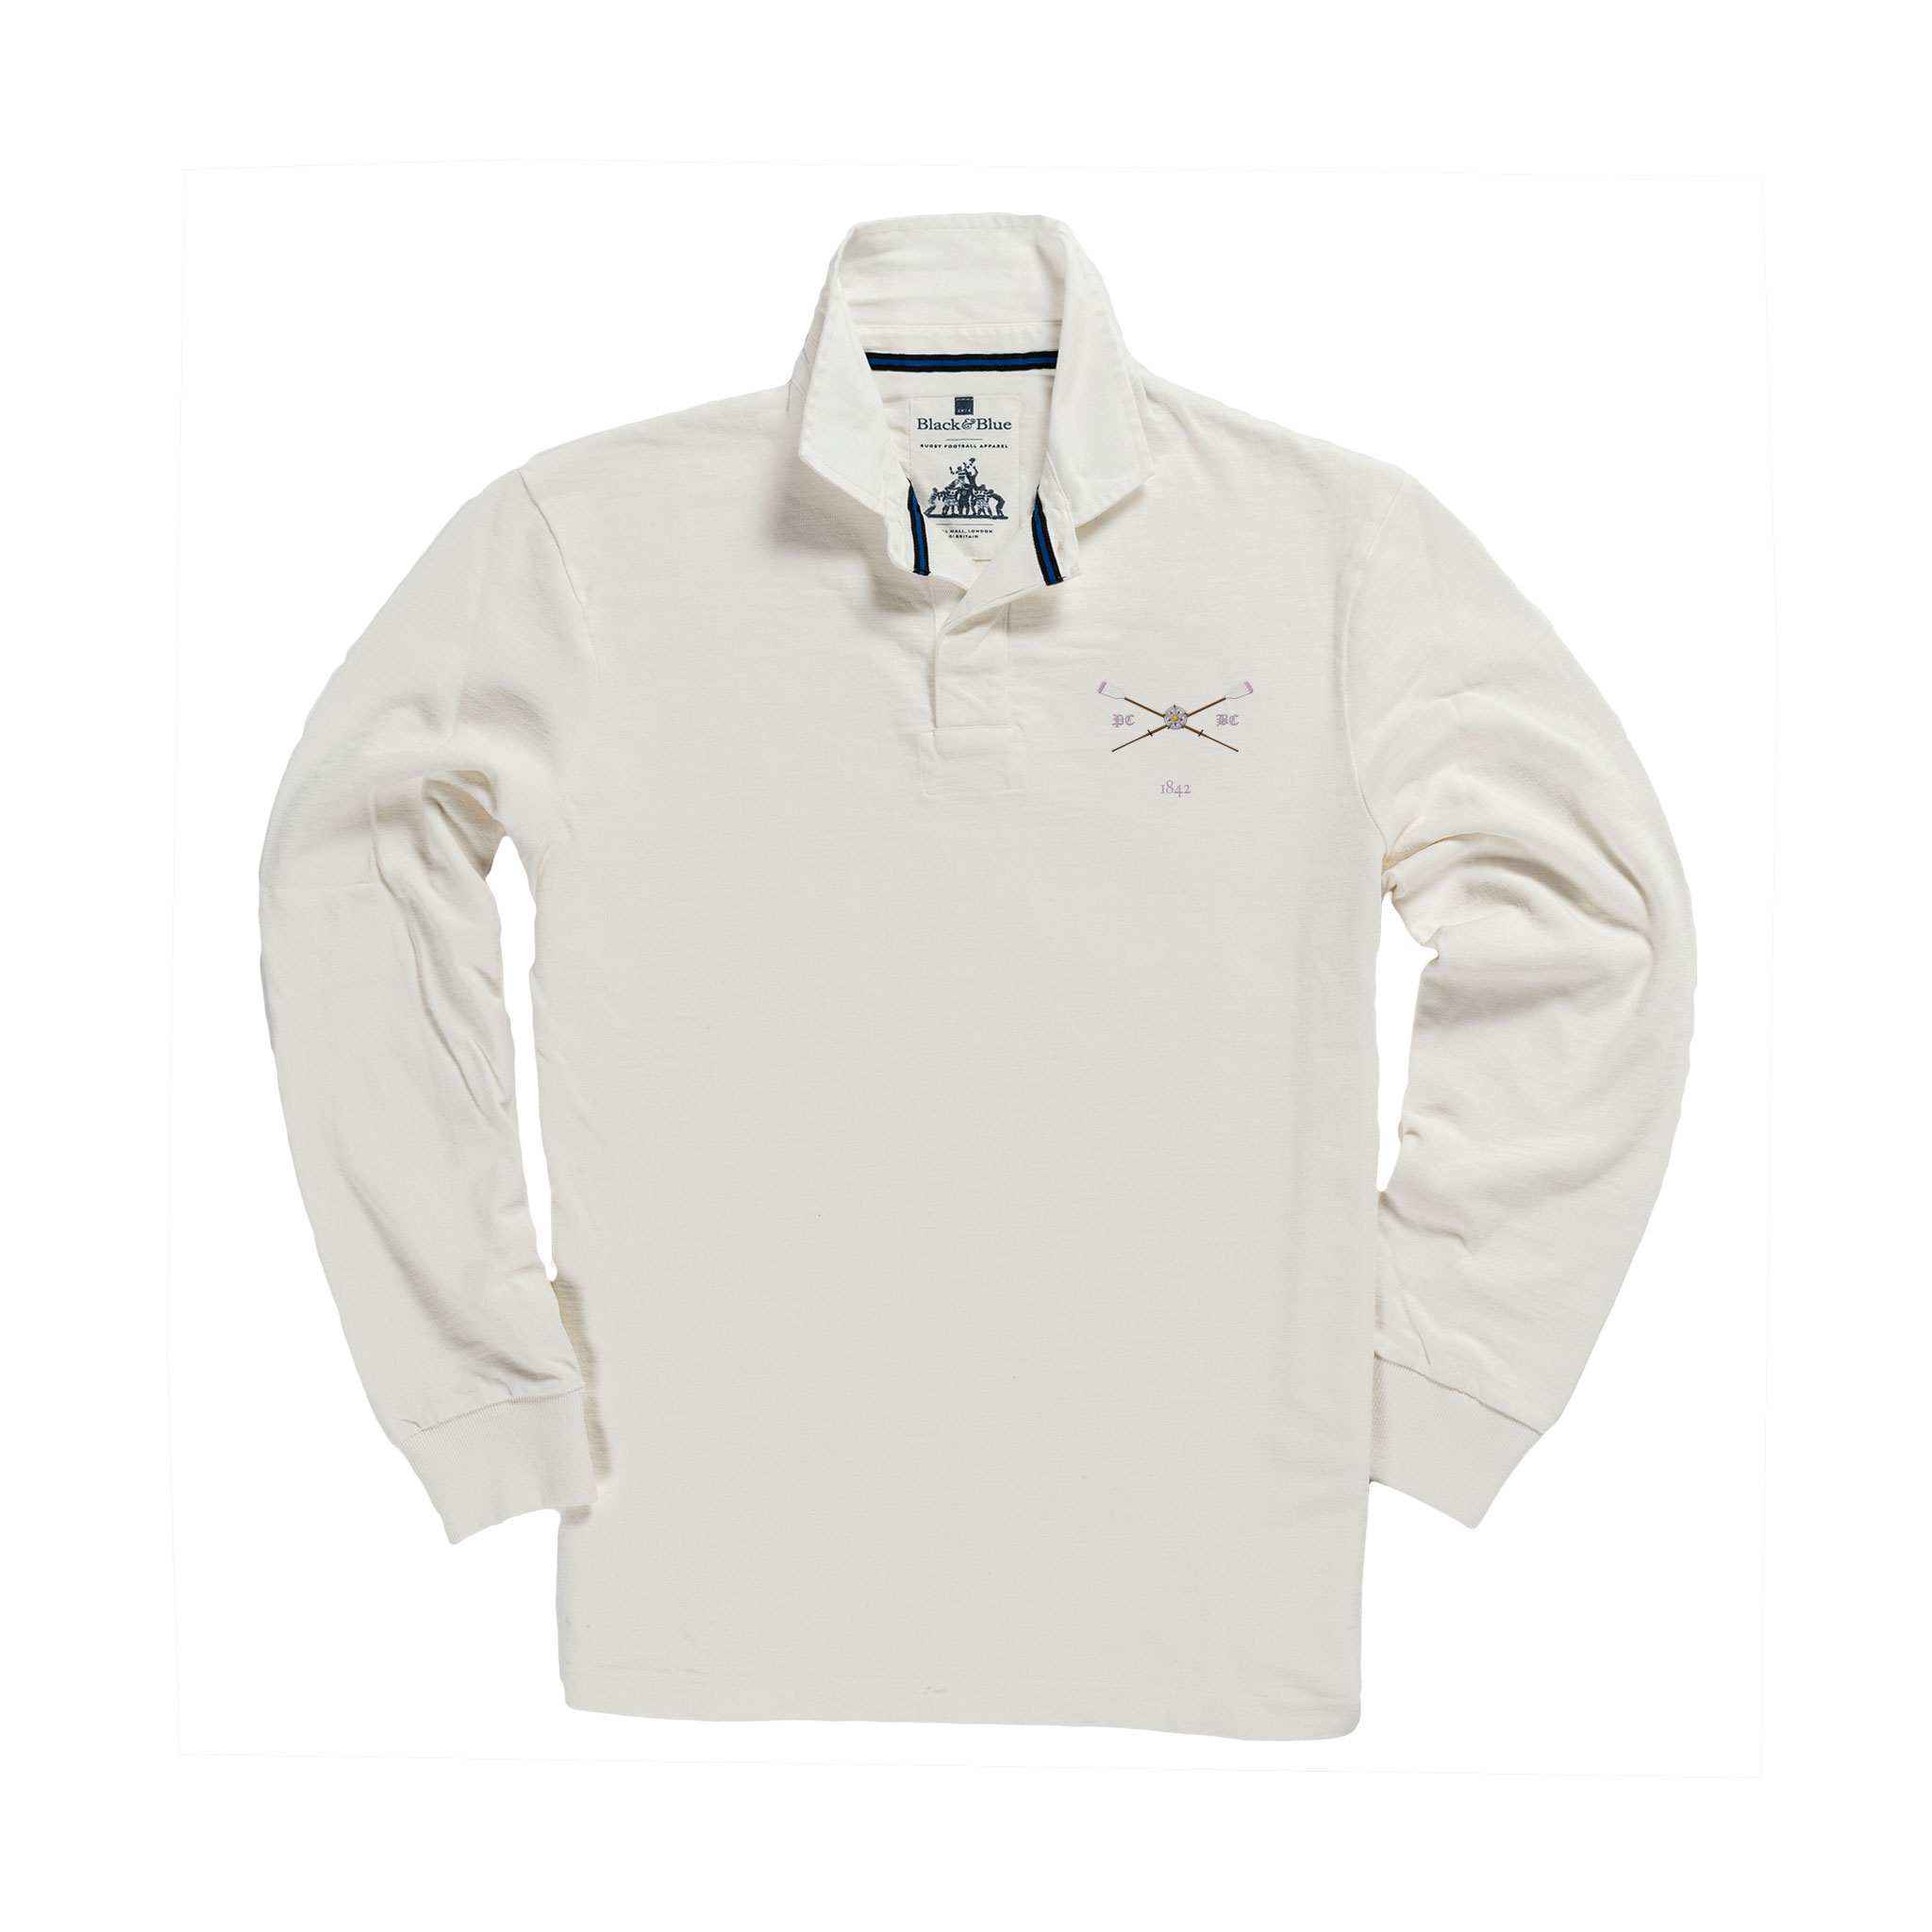 Pembroke 1842 Rugby Shirt White_Front